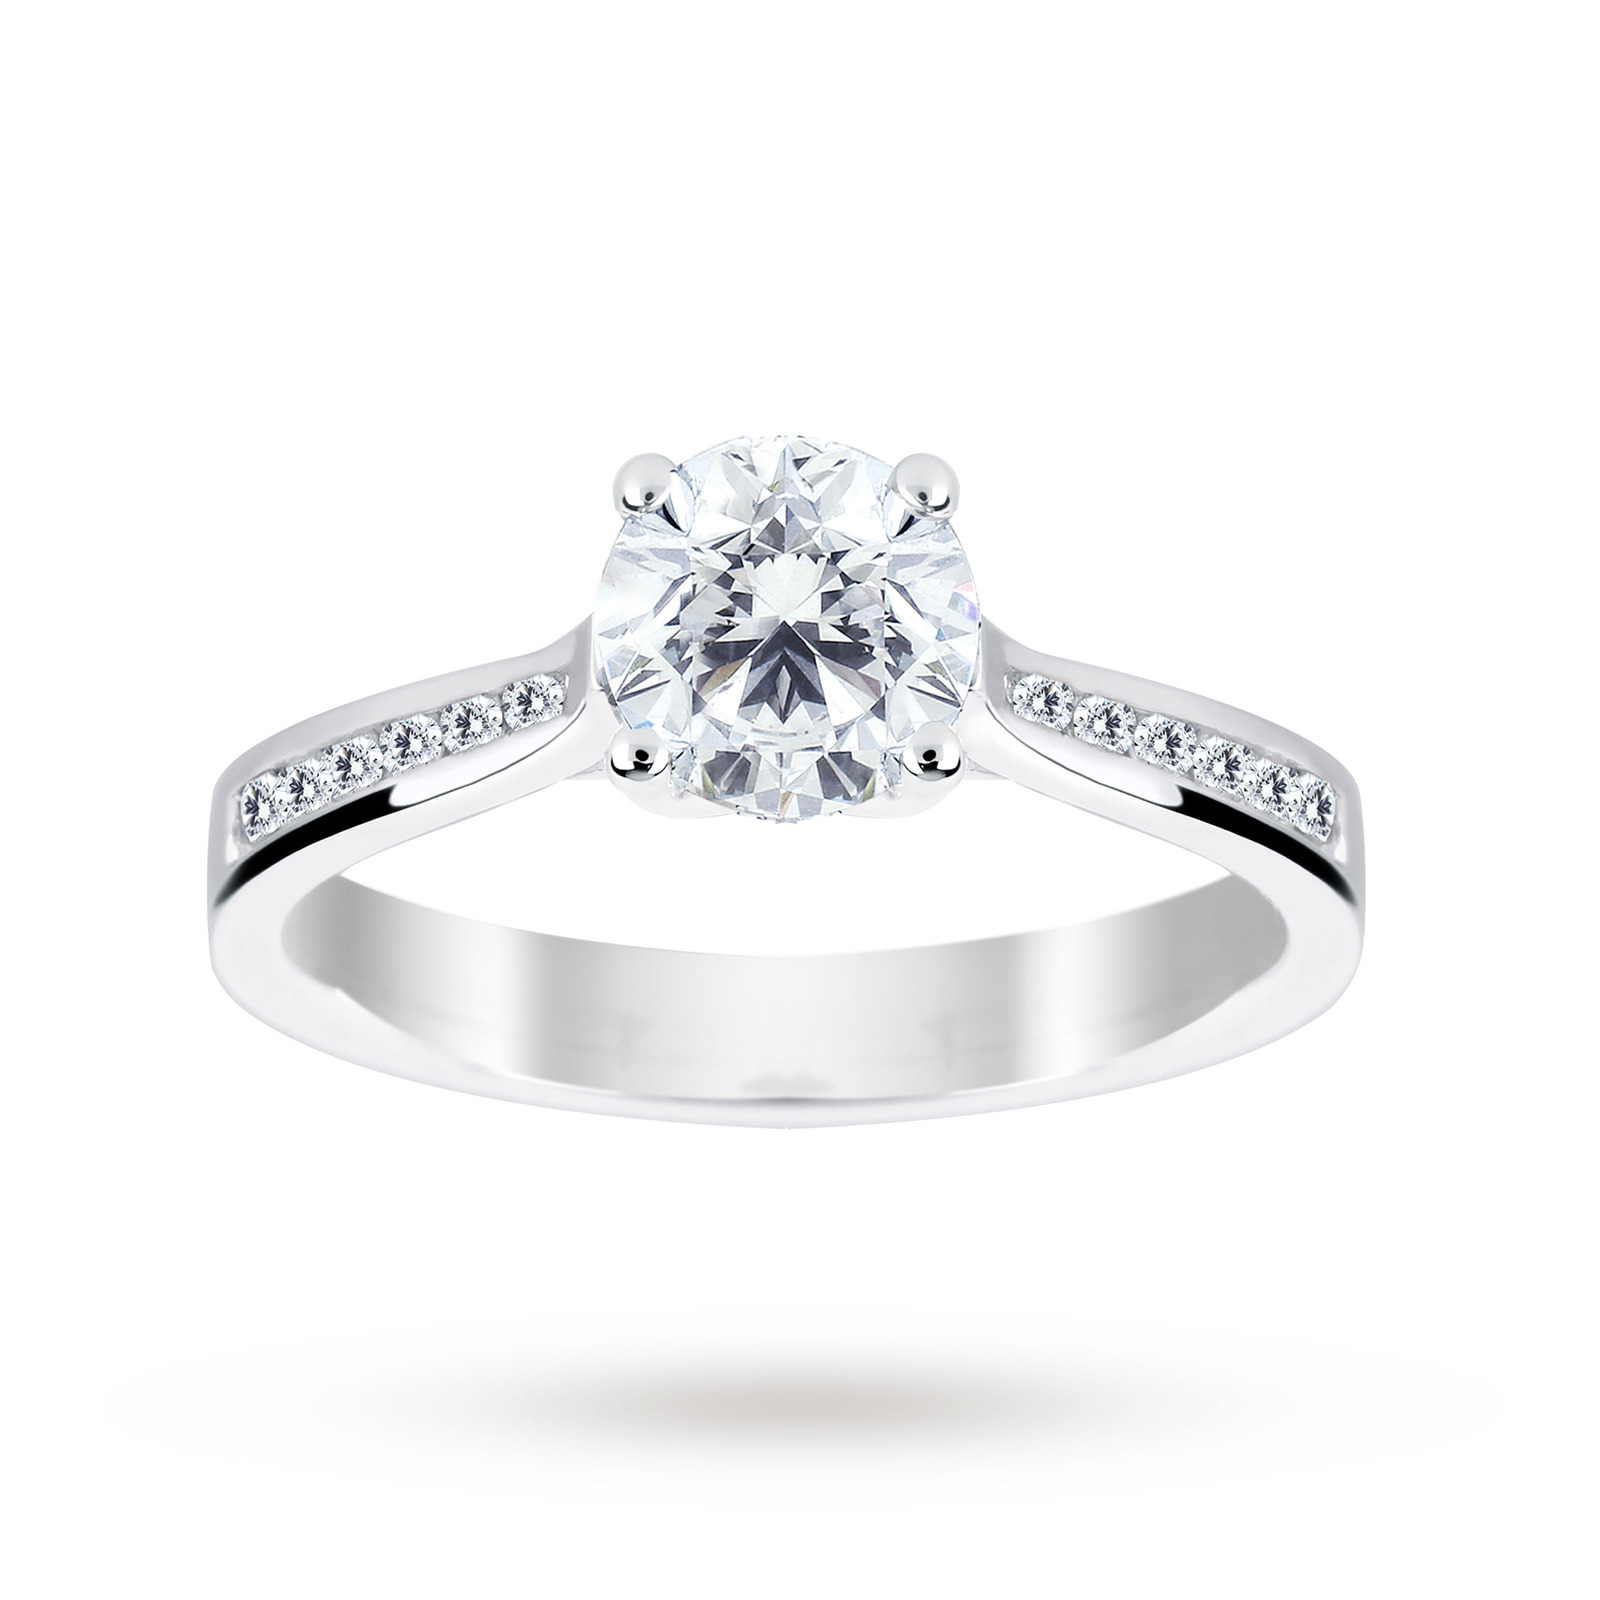 Platinum 1.18 Carat Diamond Solitare Ring - Ring Size J